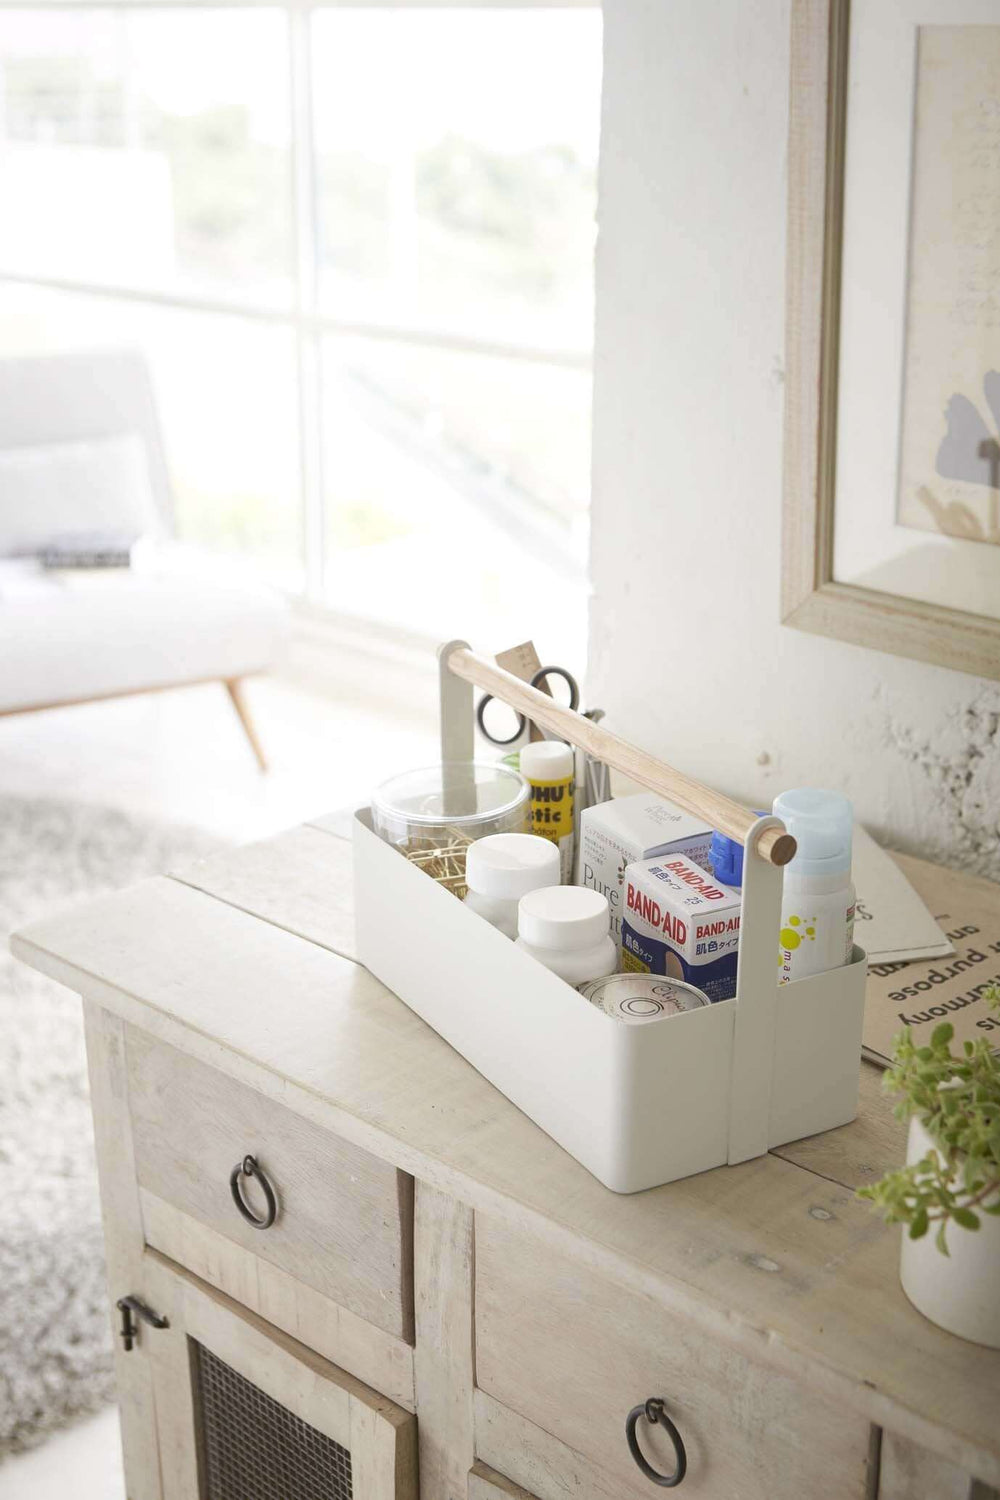 Rectangular white Yamazaki toolbox with wooden handle containing household items, sitting on dresser.